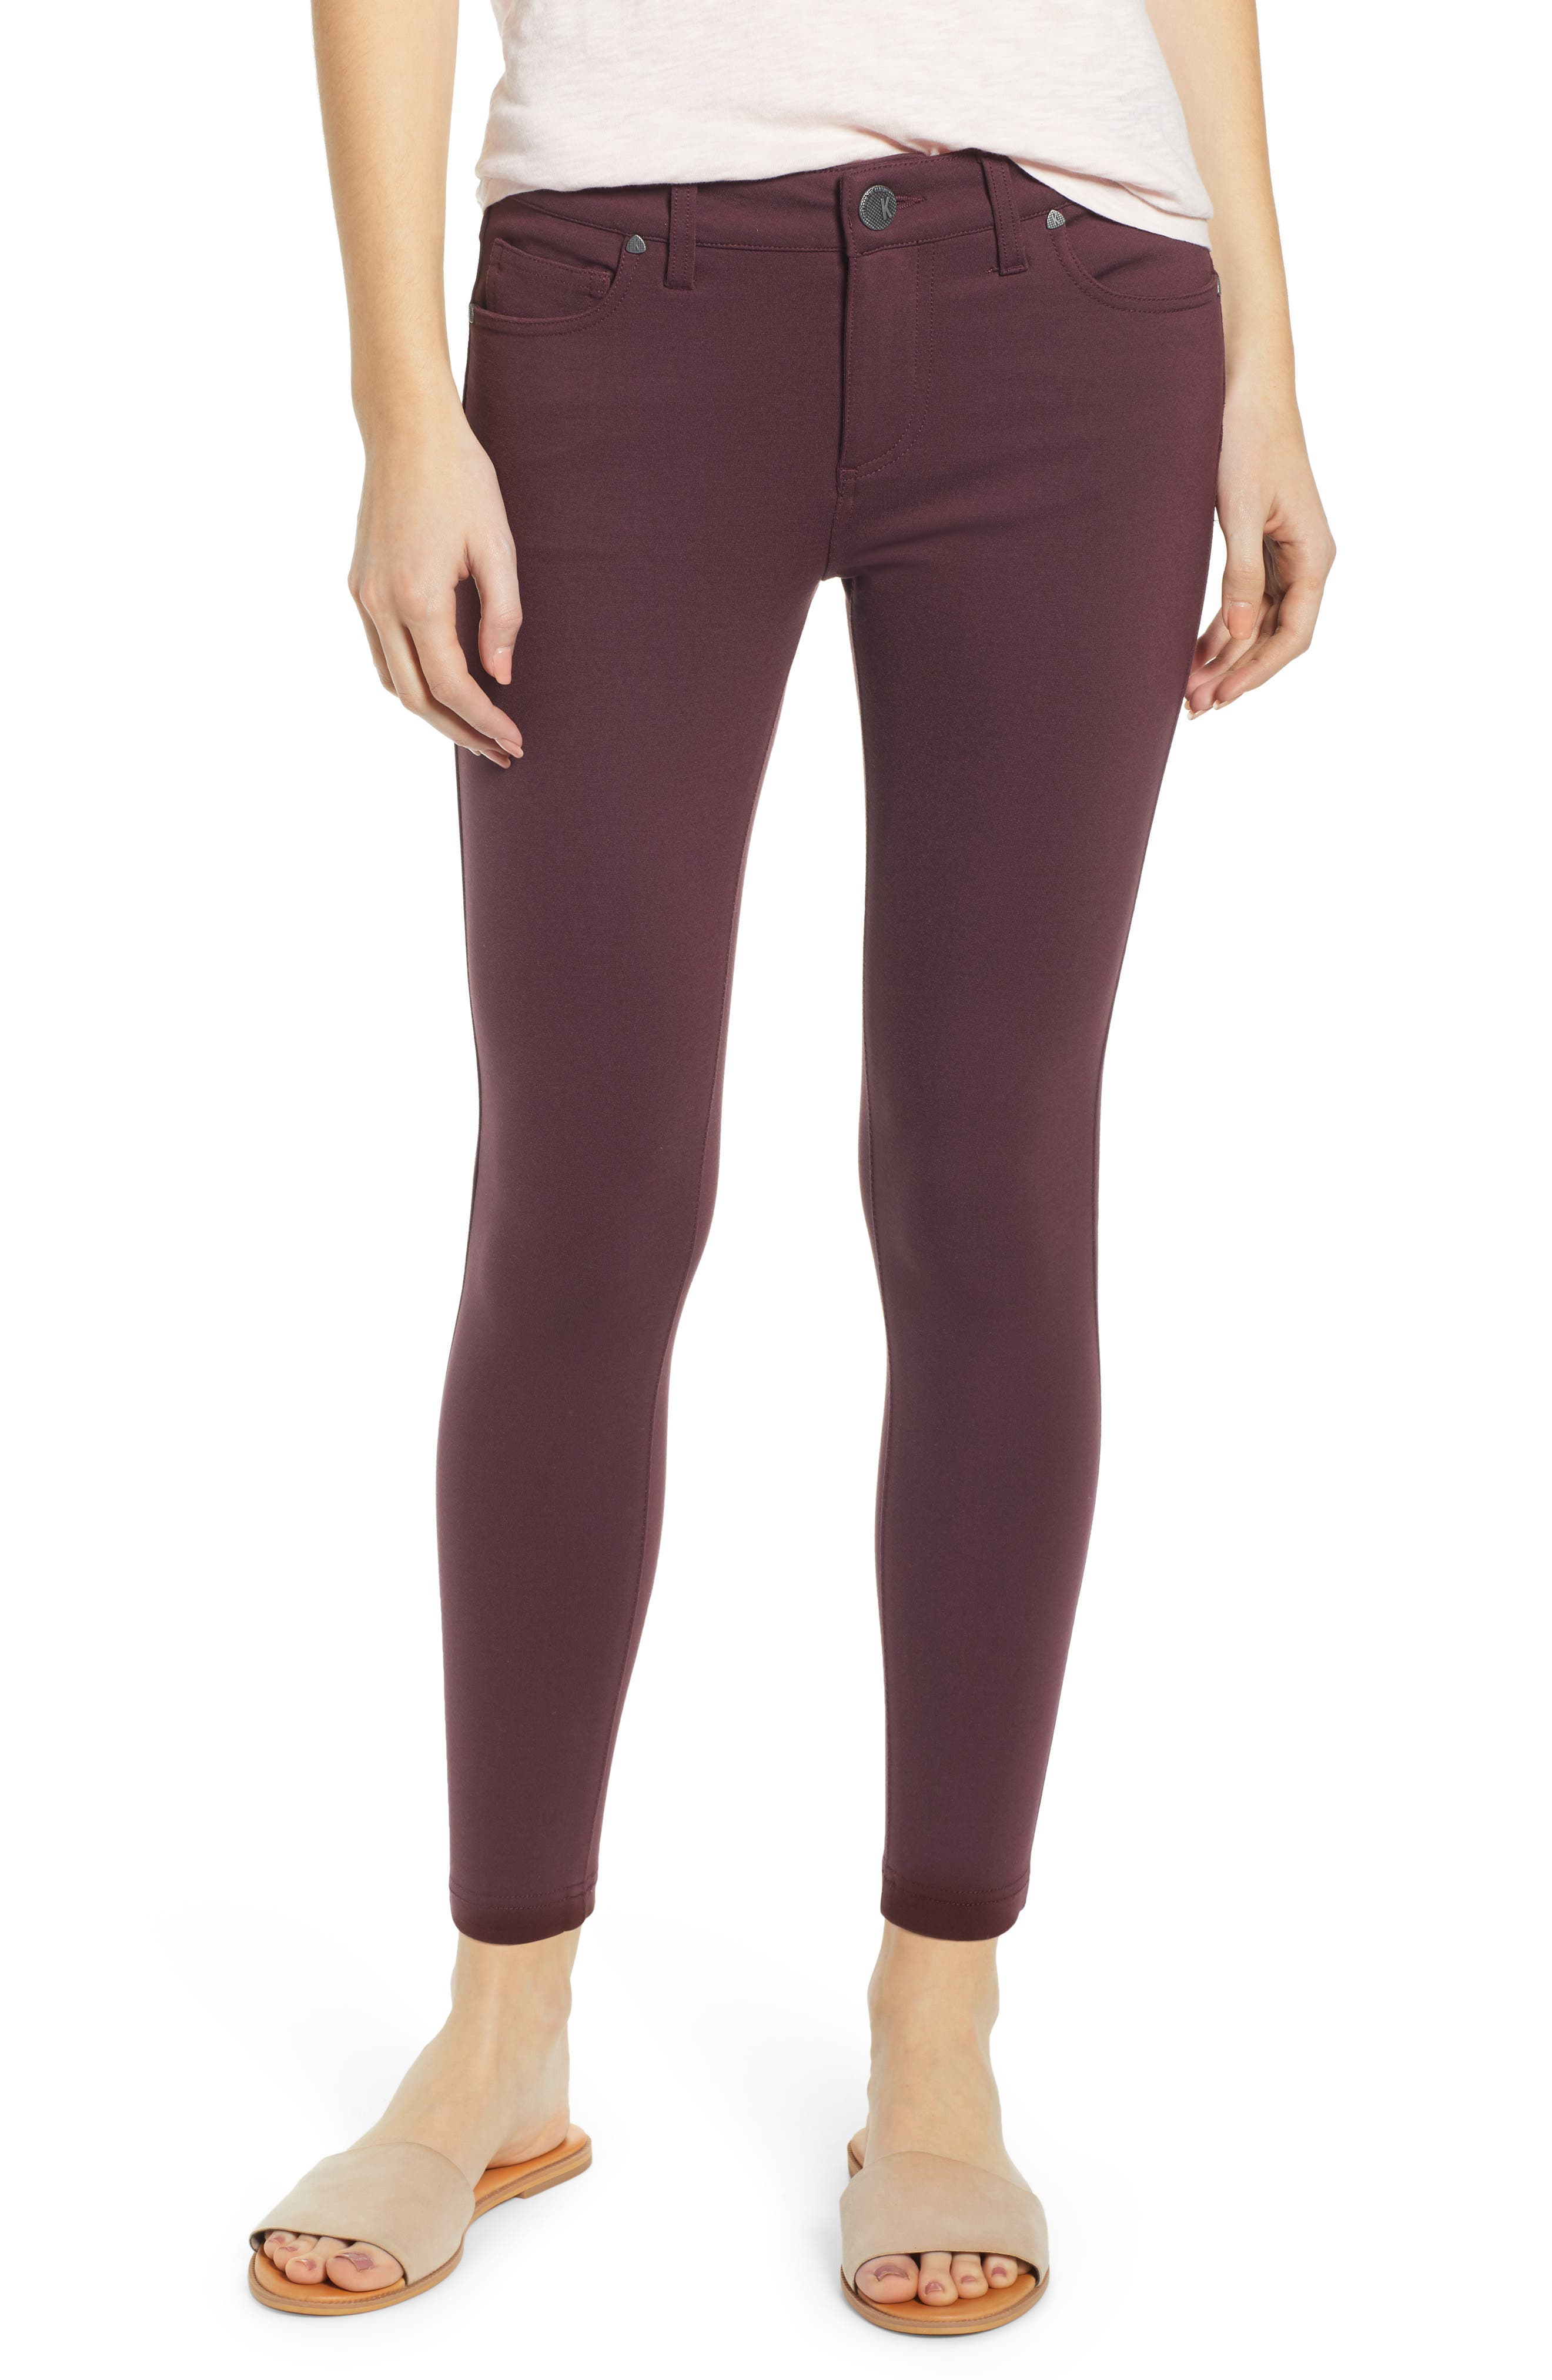 KUT from the Kloth Donna High Waist Ponte Skinny Pants (Regular & Petite)